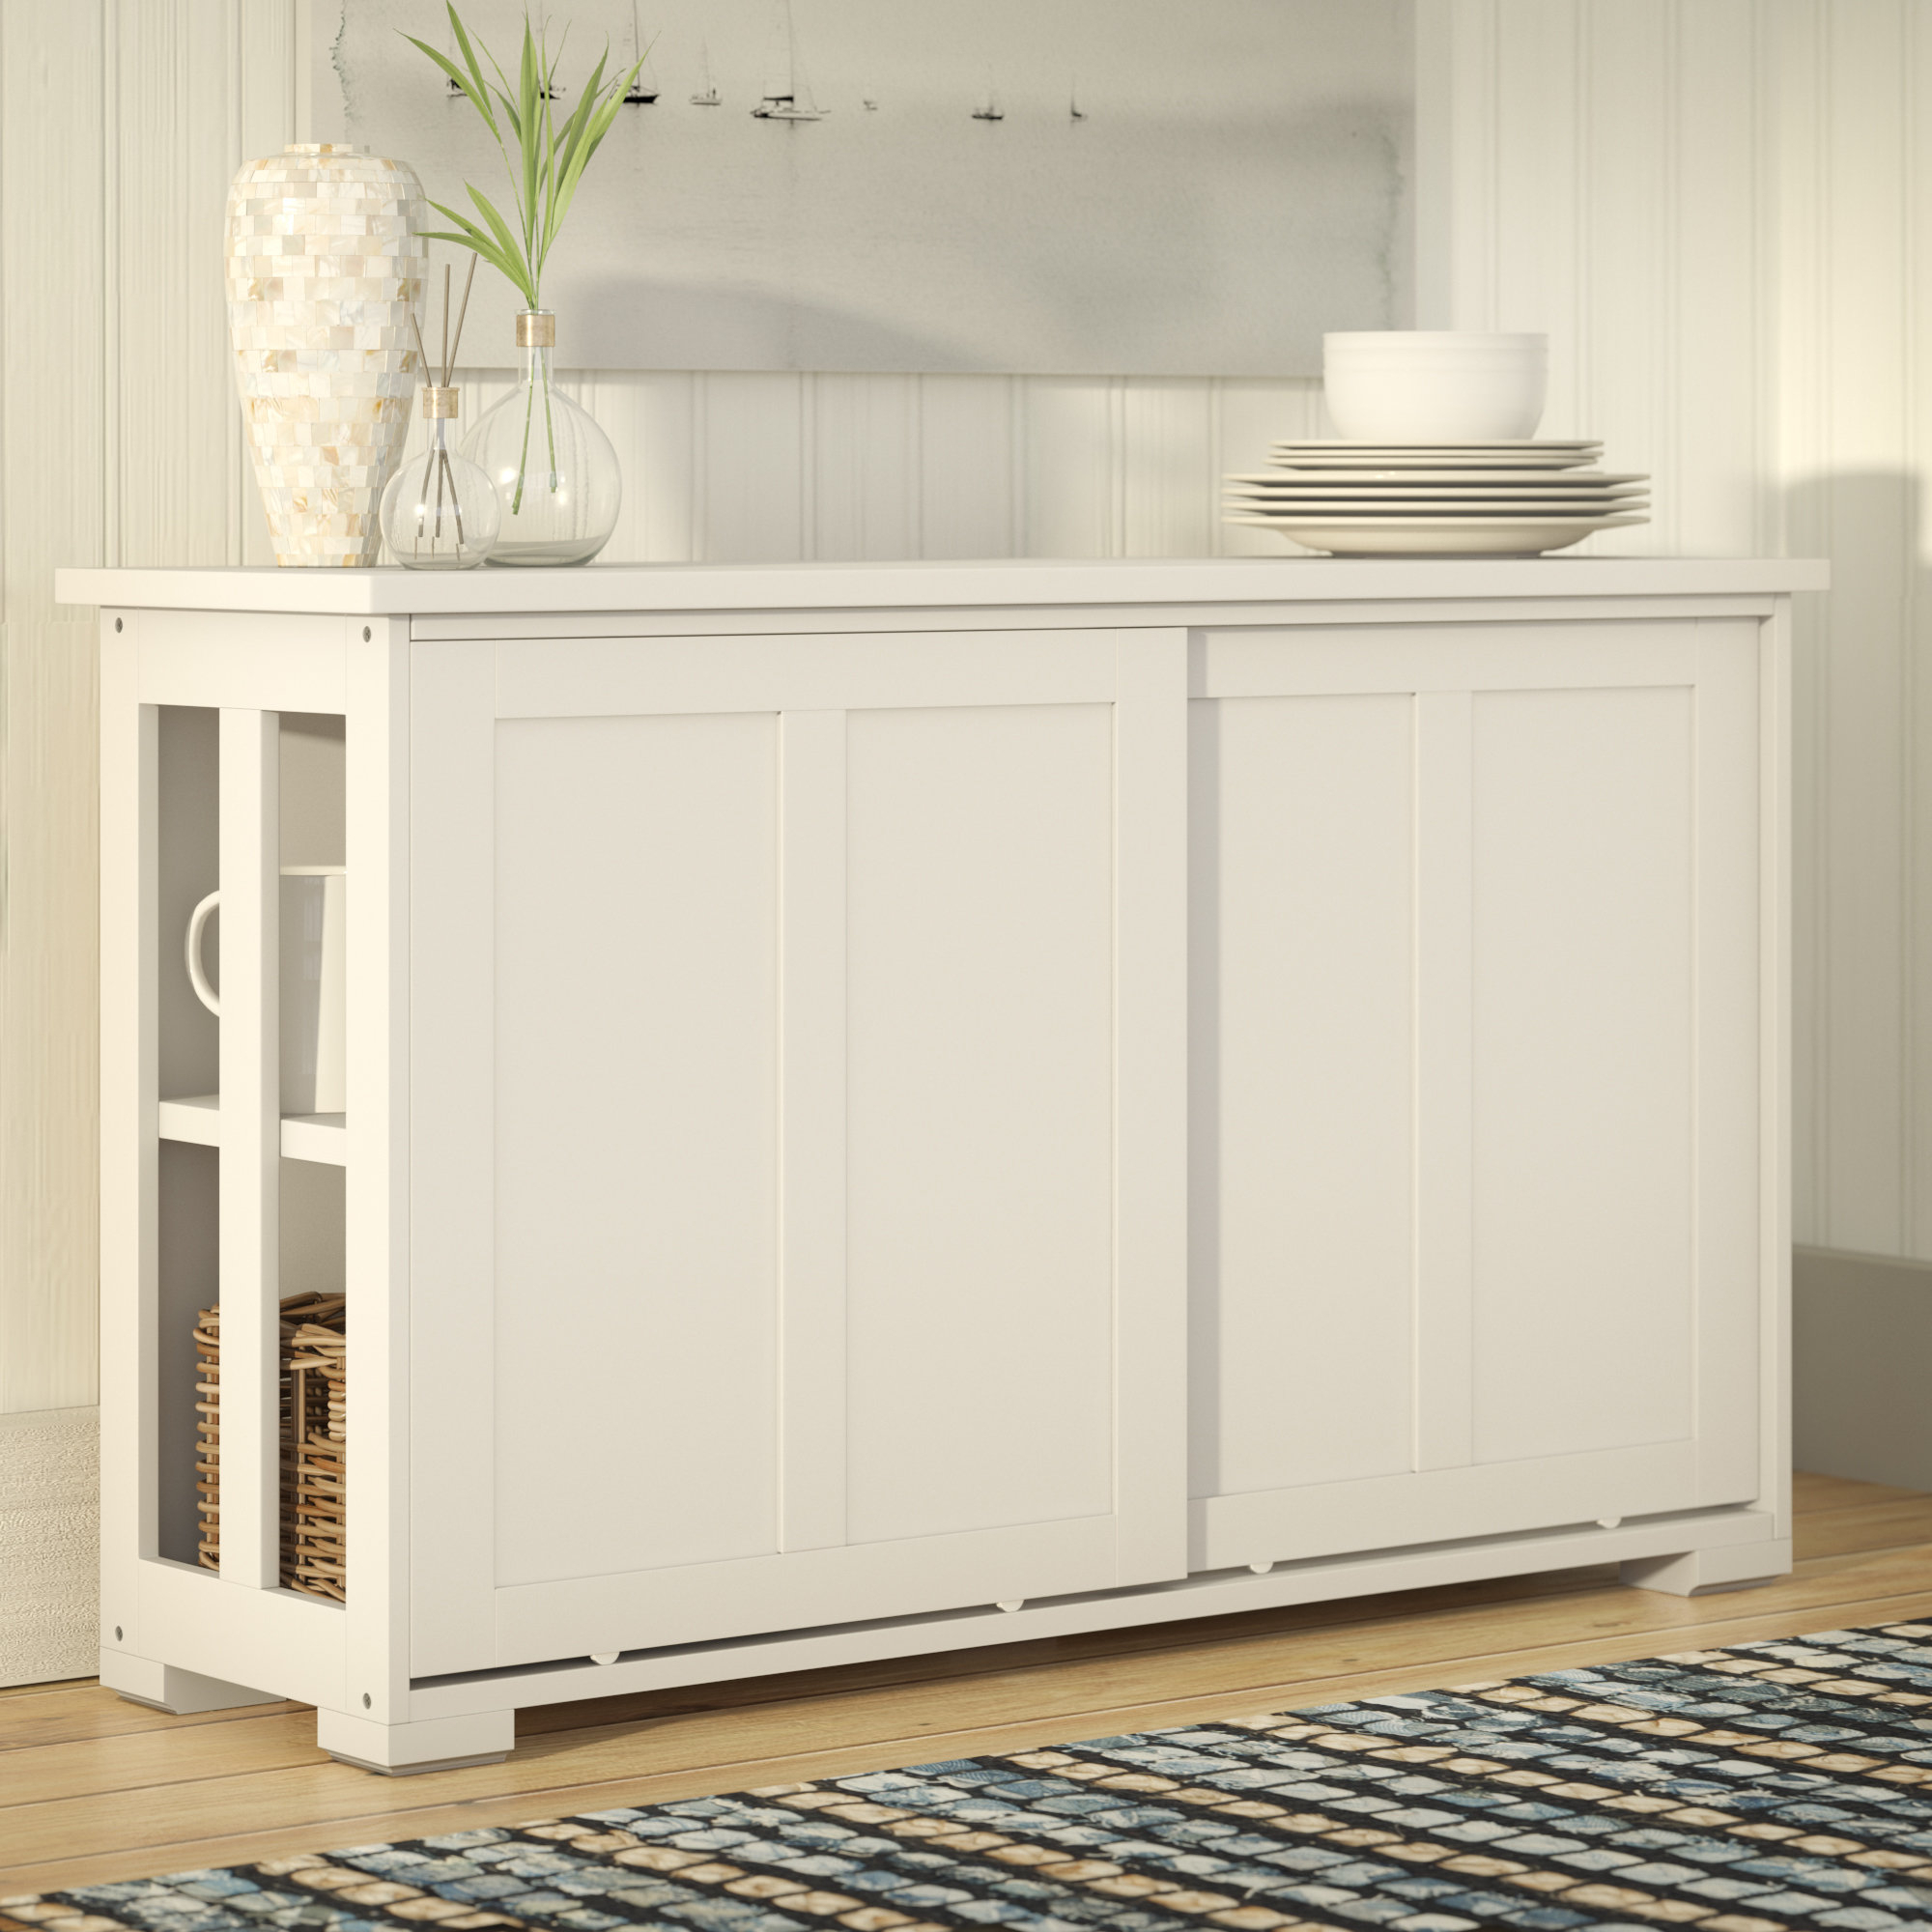 Narrow Dining Room Sideboards | Wayfair For Best And Newest Pineville Dining Sideboards (View 19 of 20)